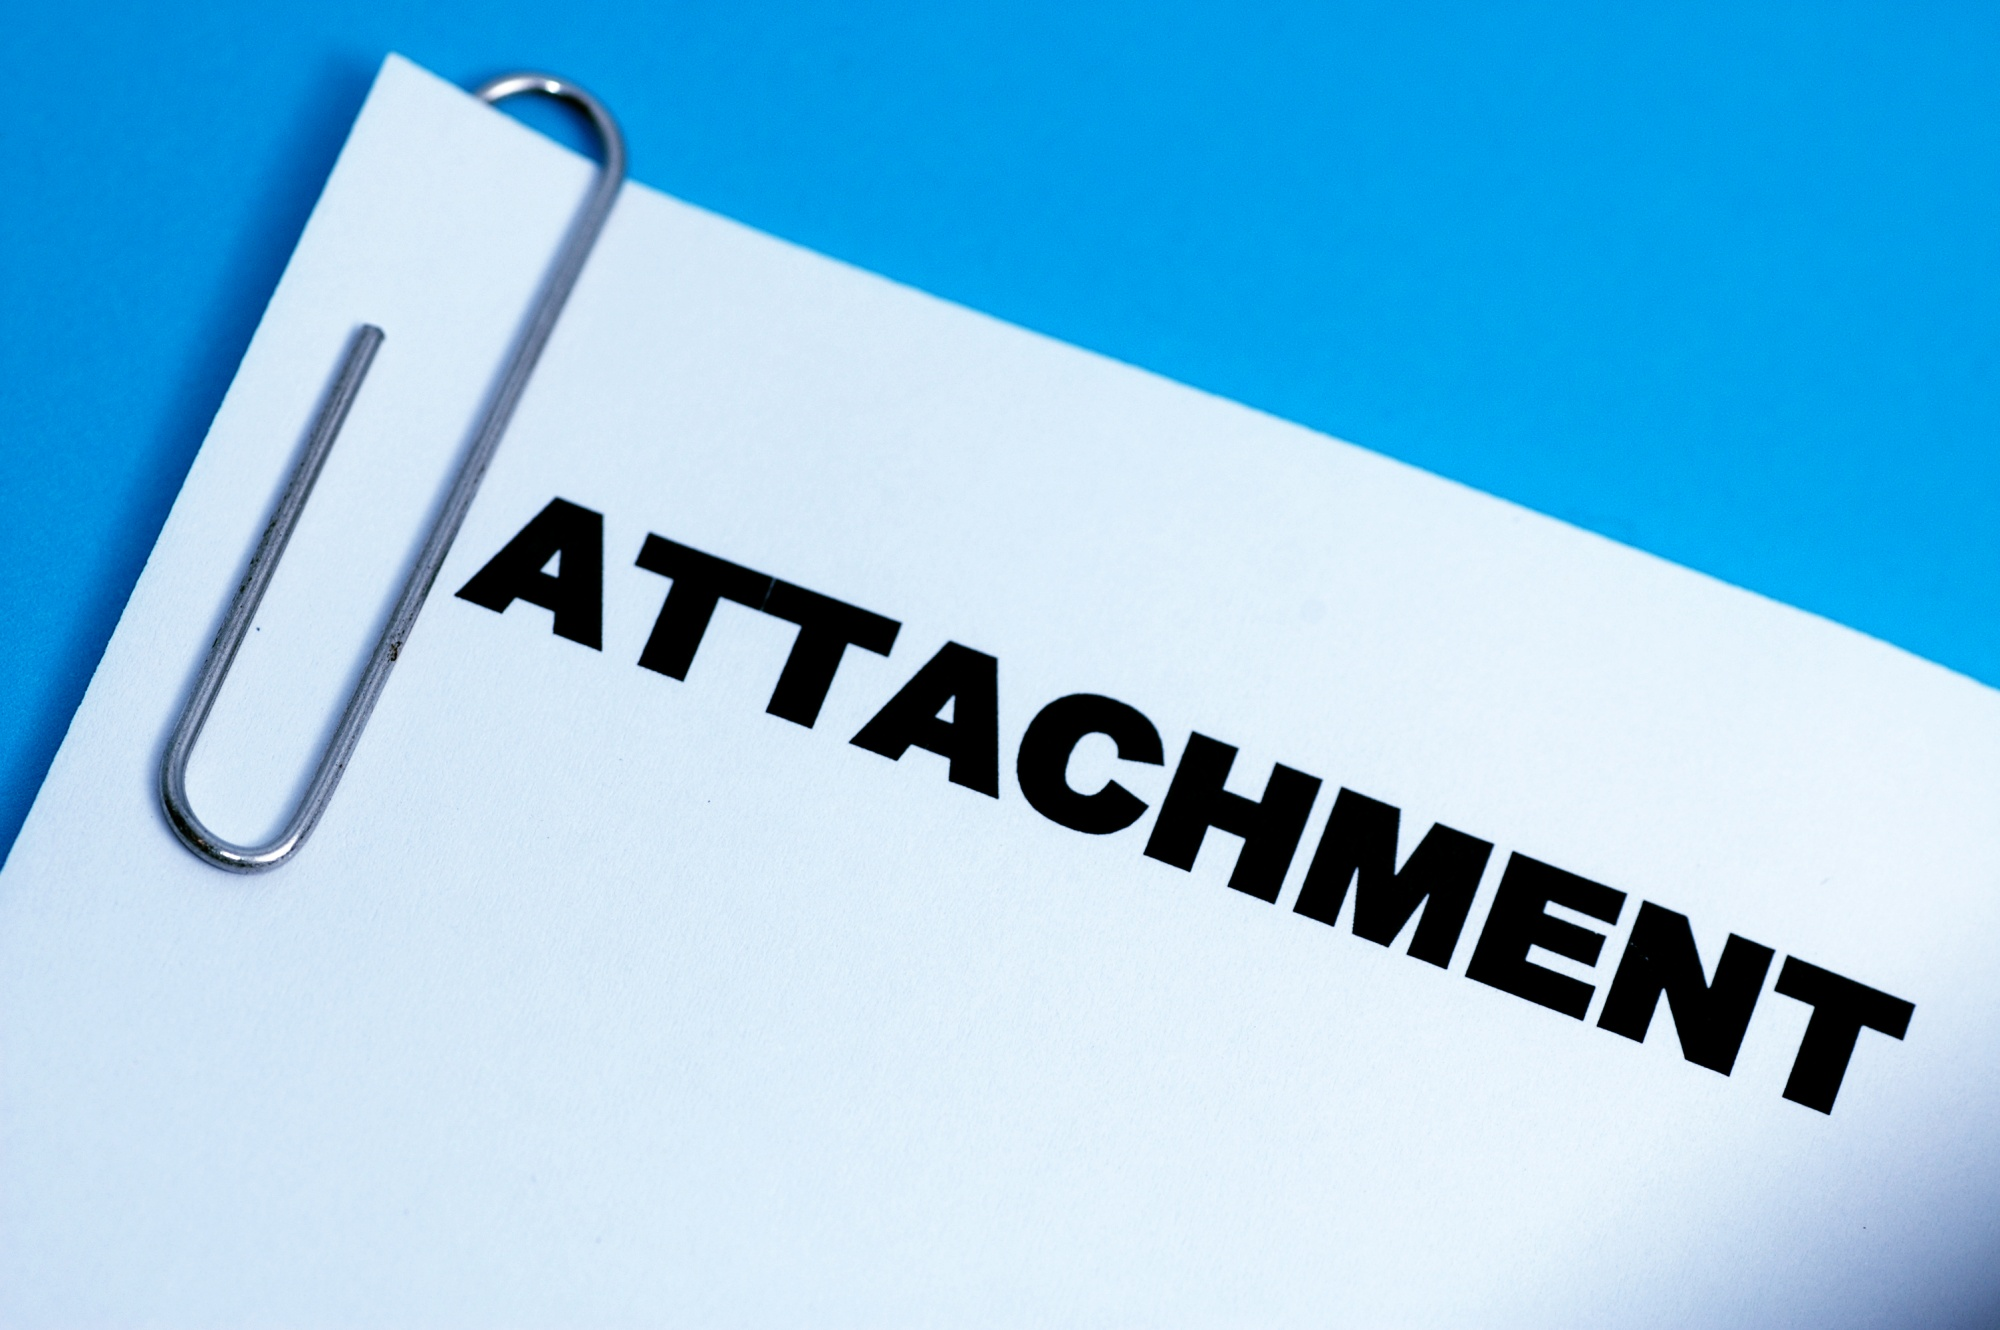 Sending Attachments in email